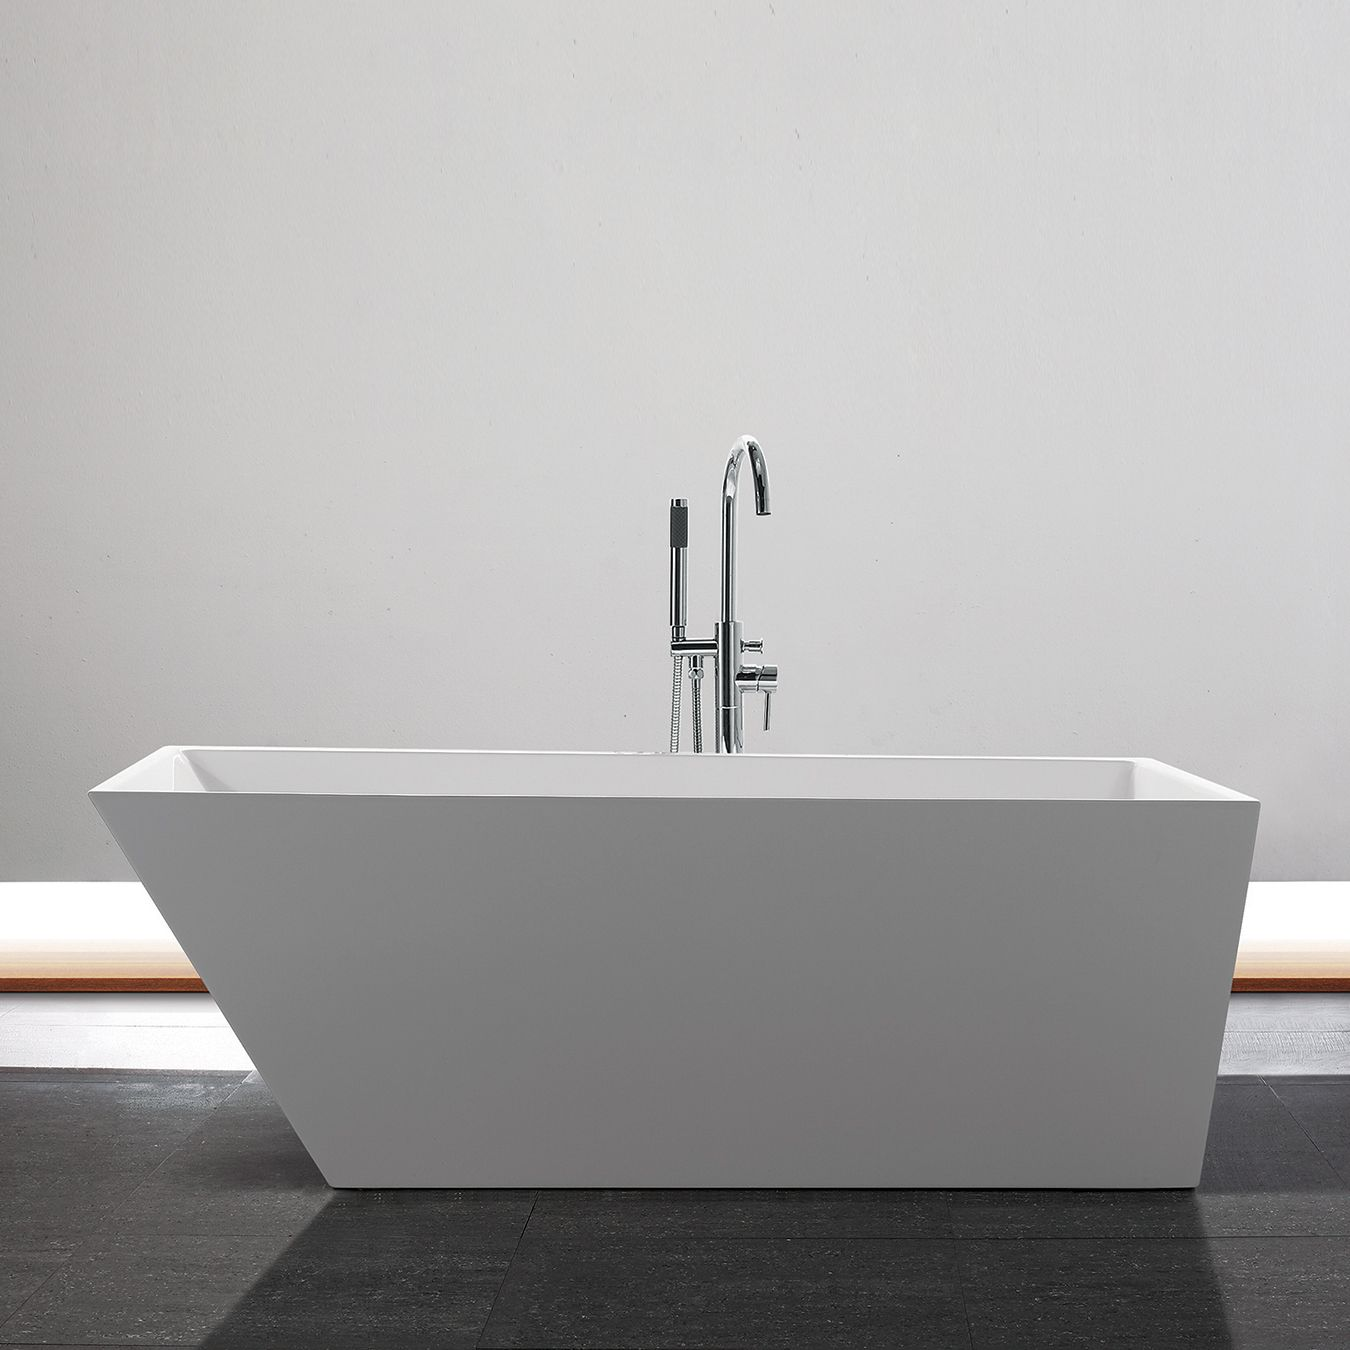 Jade Bath BLW1816 French Riviera Élodie Freestanding Soaker Tub at ...